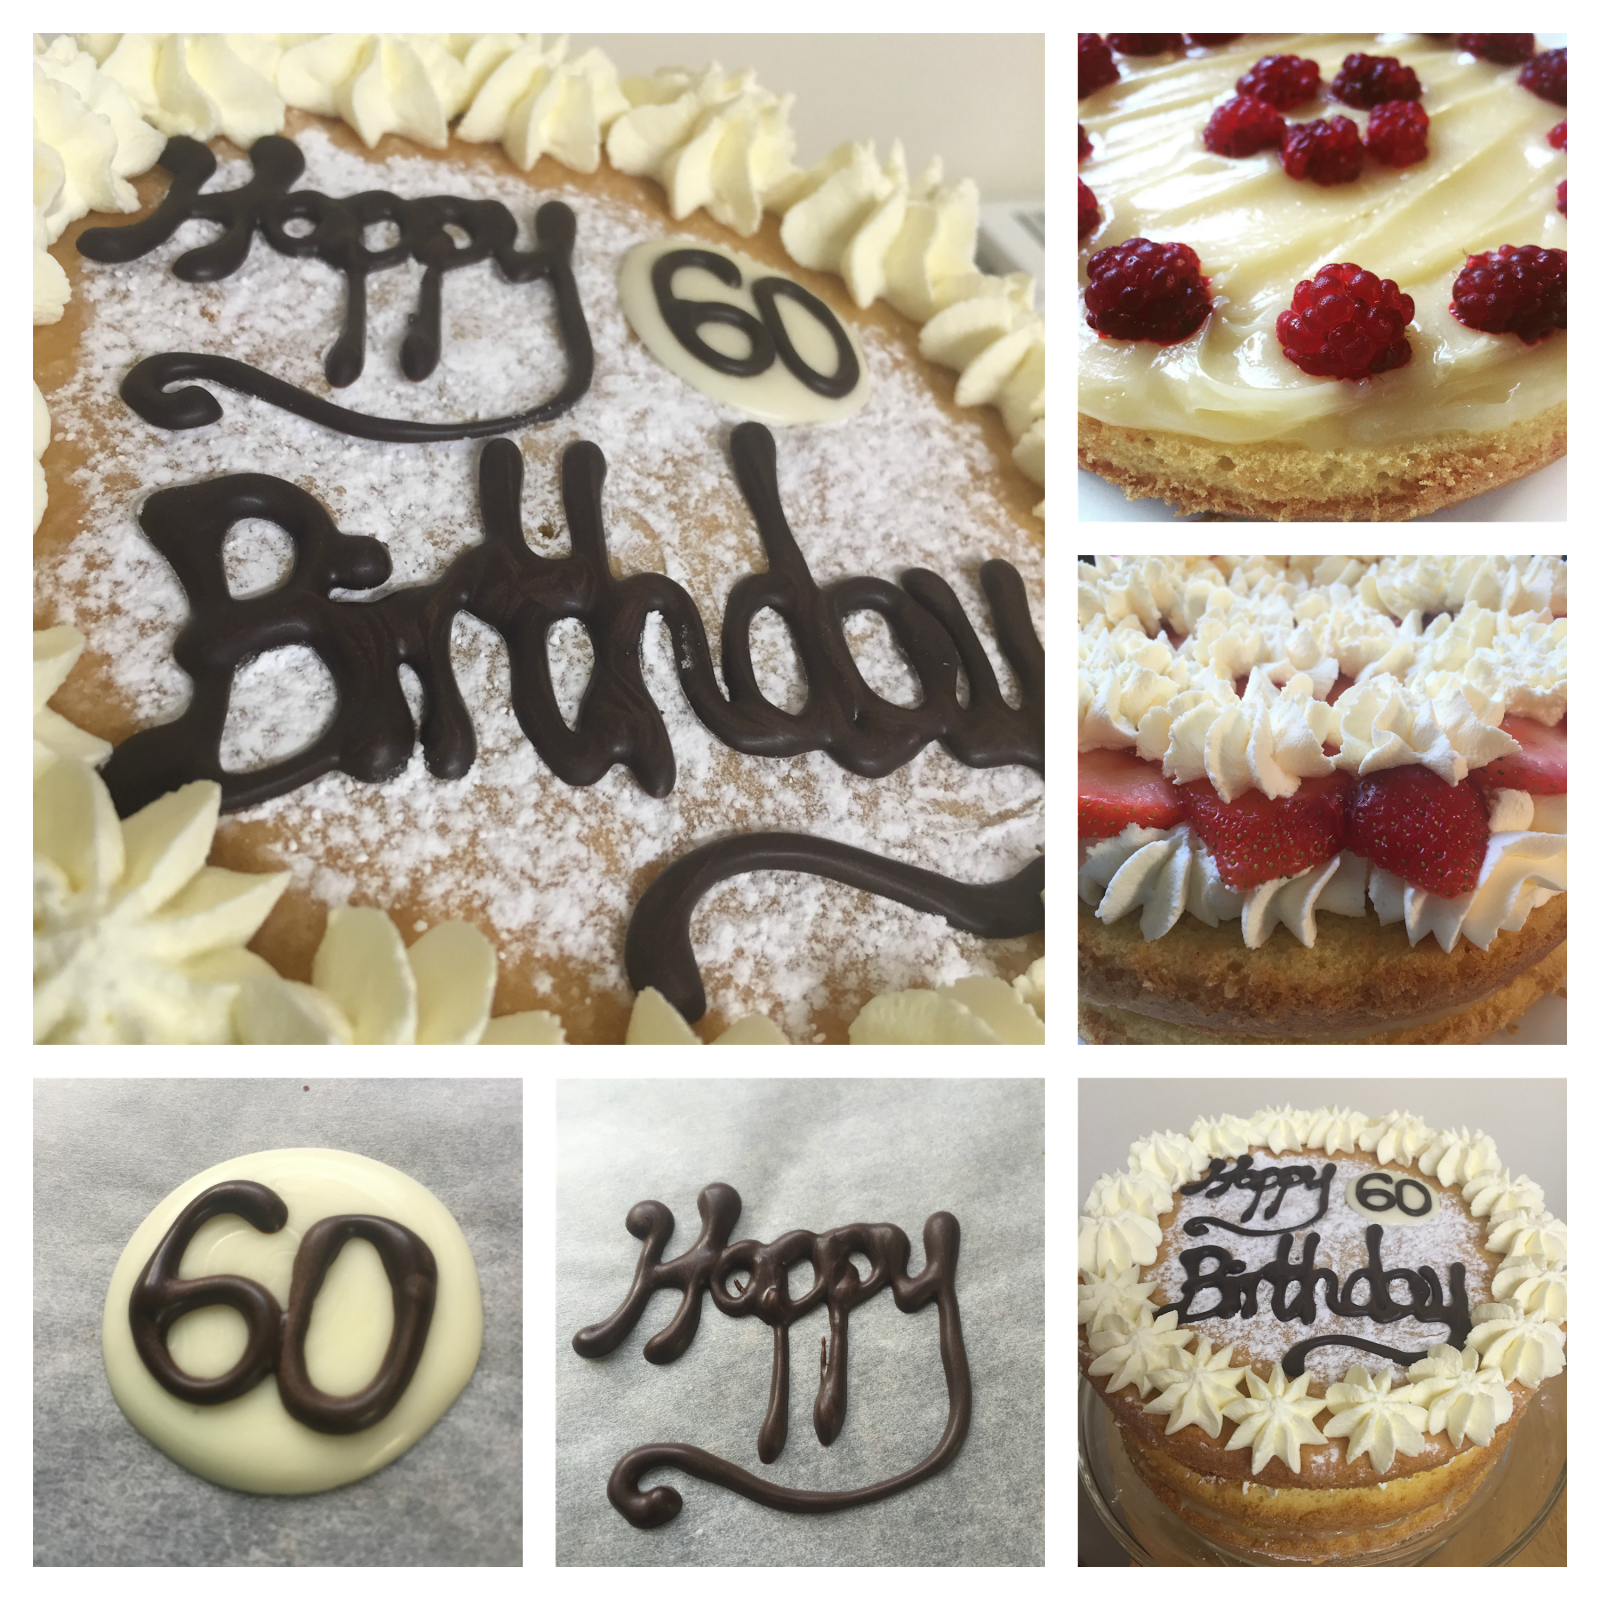 Decorating A 60th Birthday Cake The Easy Way 60th Birthday Cakes Fairy Cakes Cake